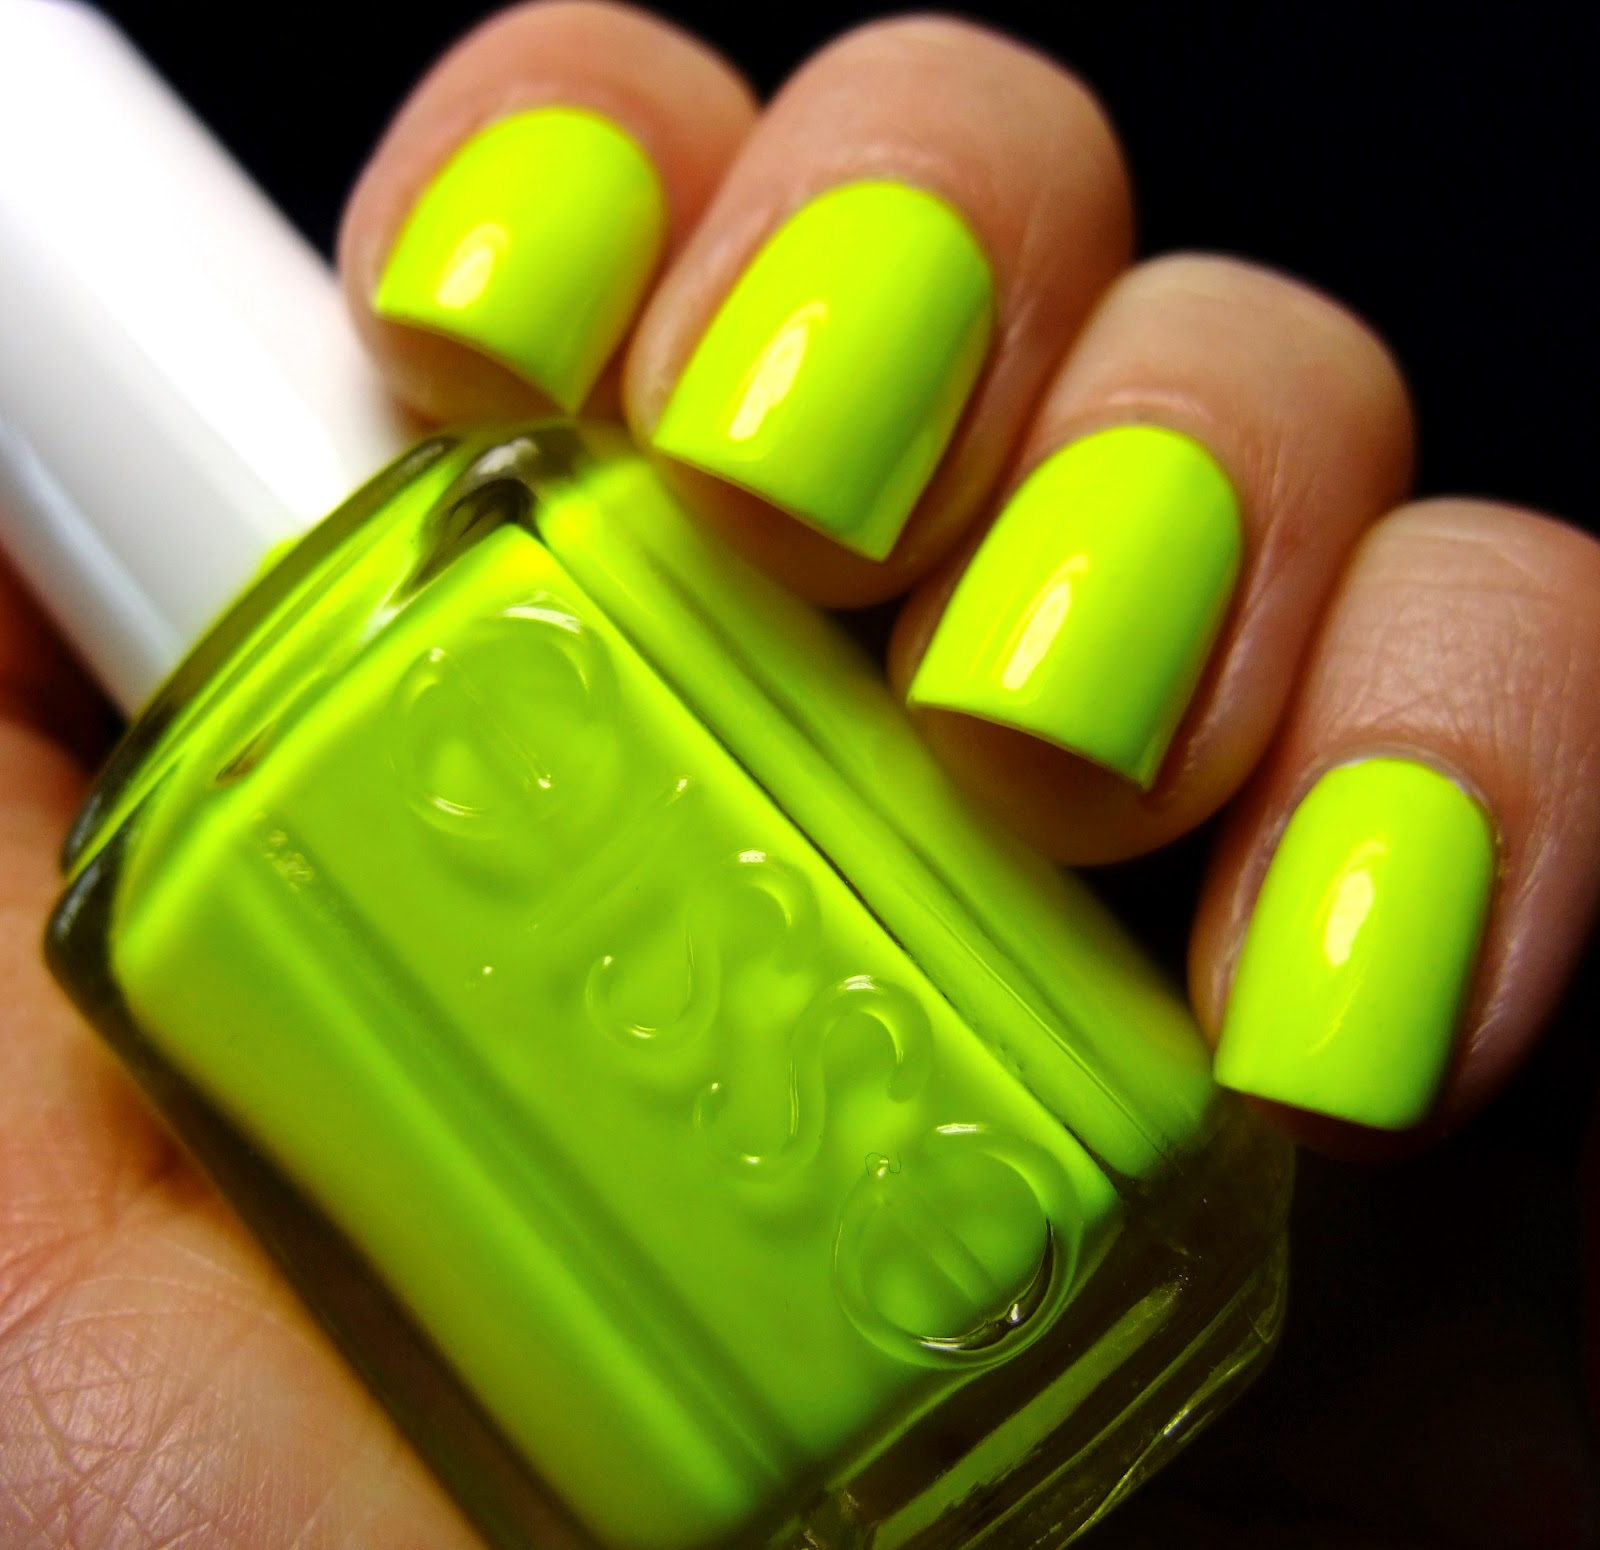 neon nails - Google Search on We Heart It